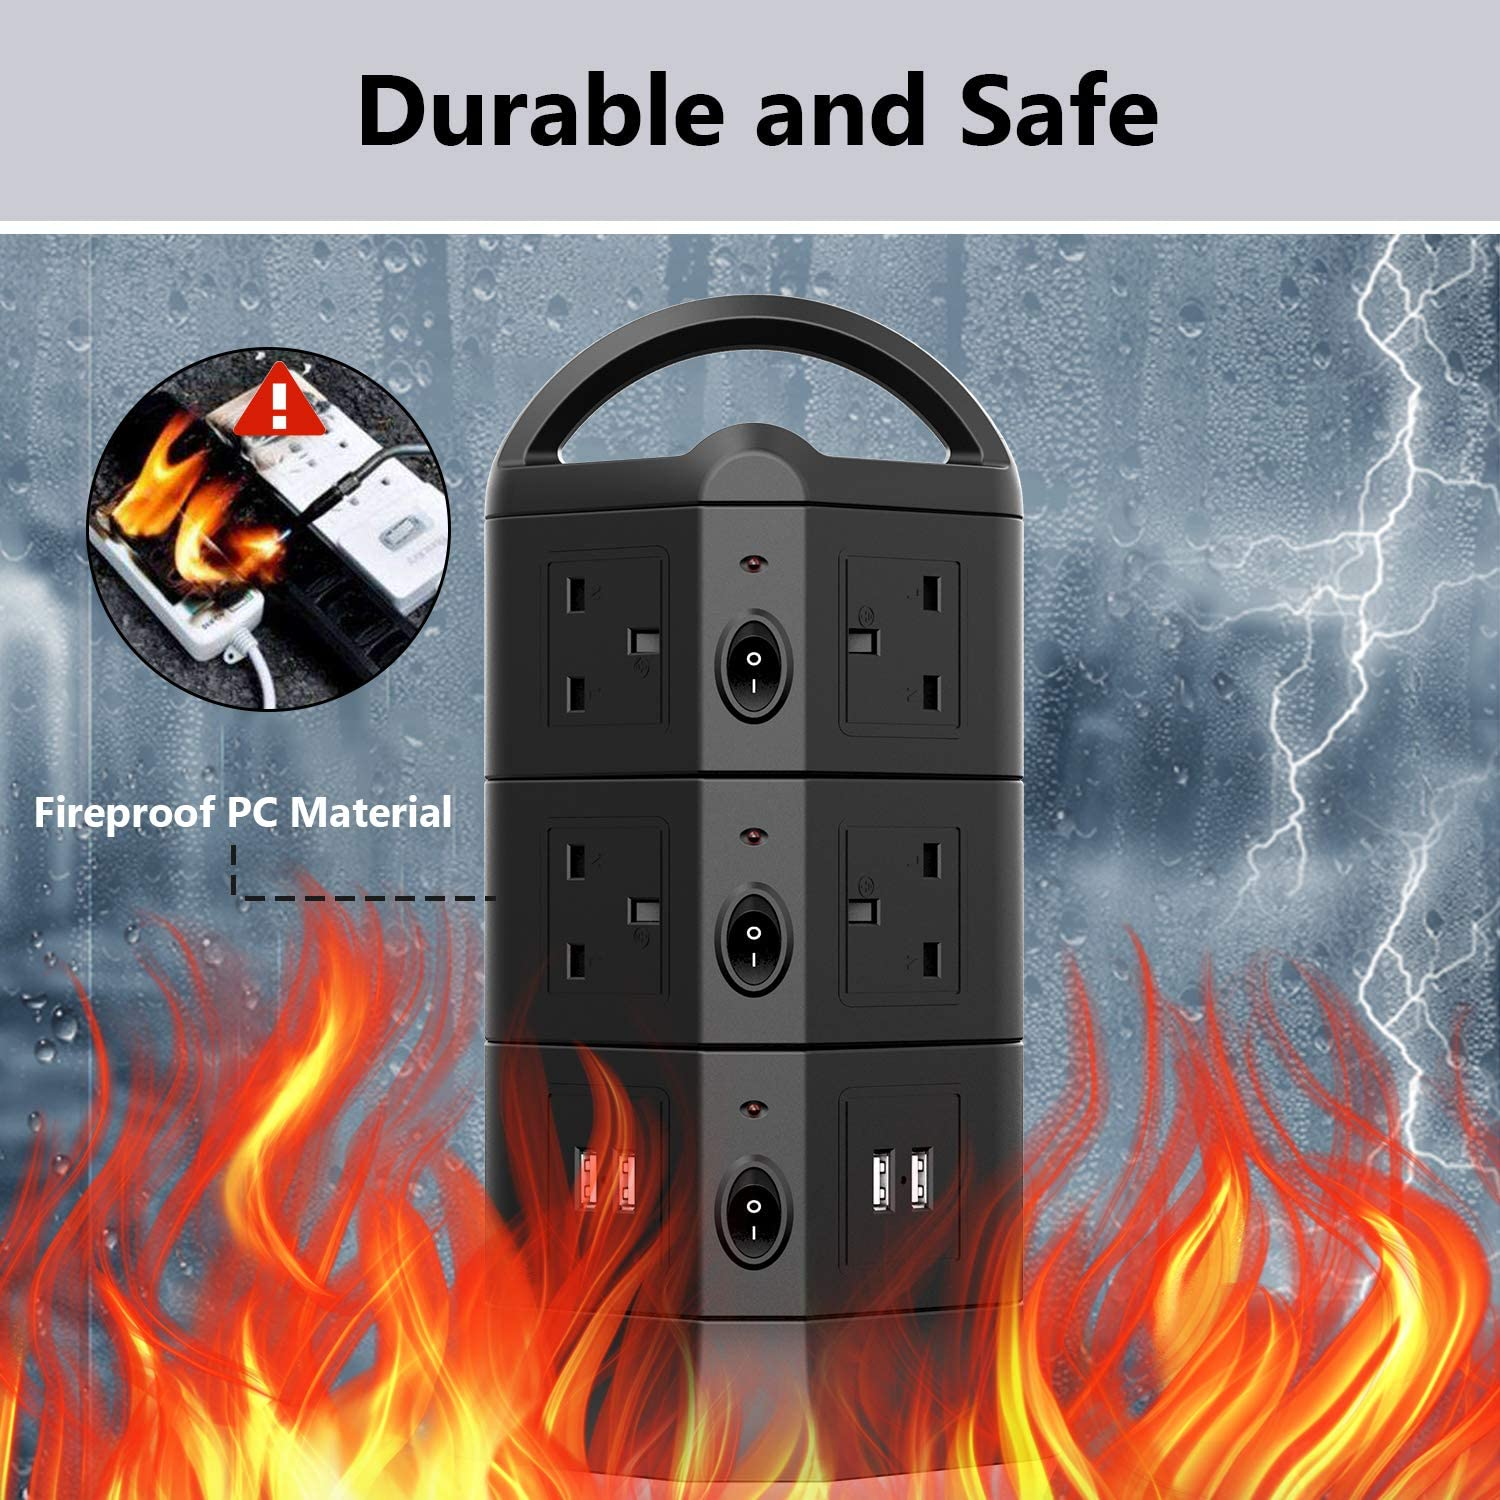 MiiKARE Flat Plug Tower Extension Lead for Home Appliances Phones Laptops Black 10 Way Outlets Tower Power Strip with 4 USB Ports,5V//3.1A Per Port Max With Overload Protection,Extension Long Cord 2M